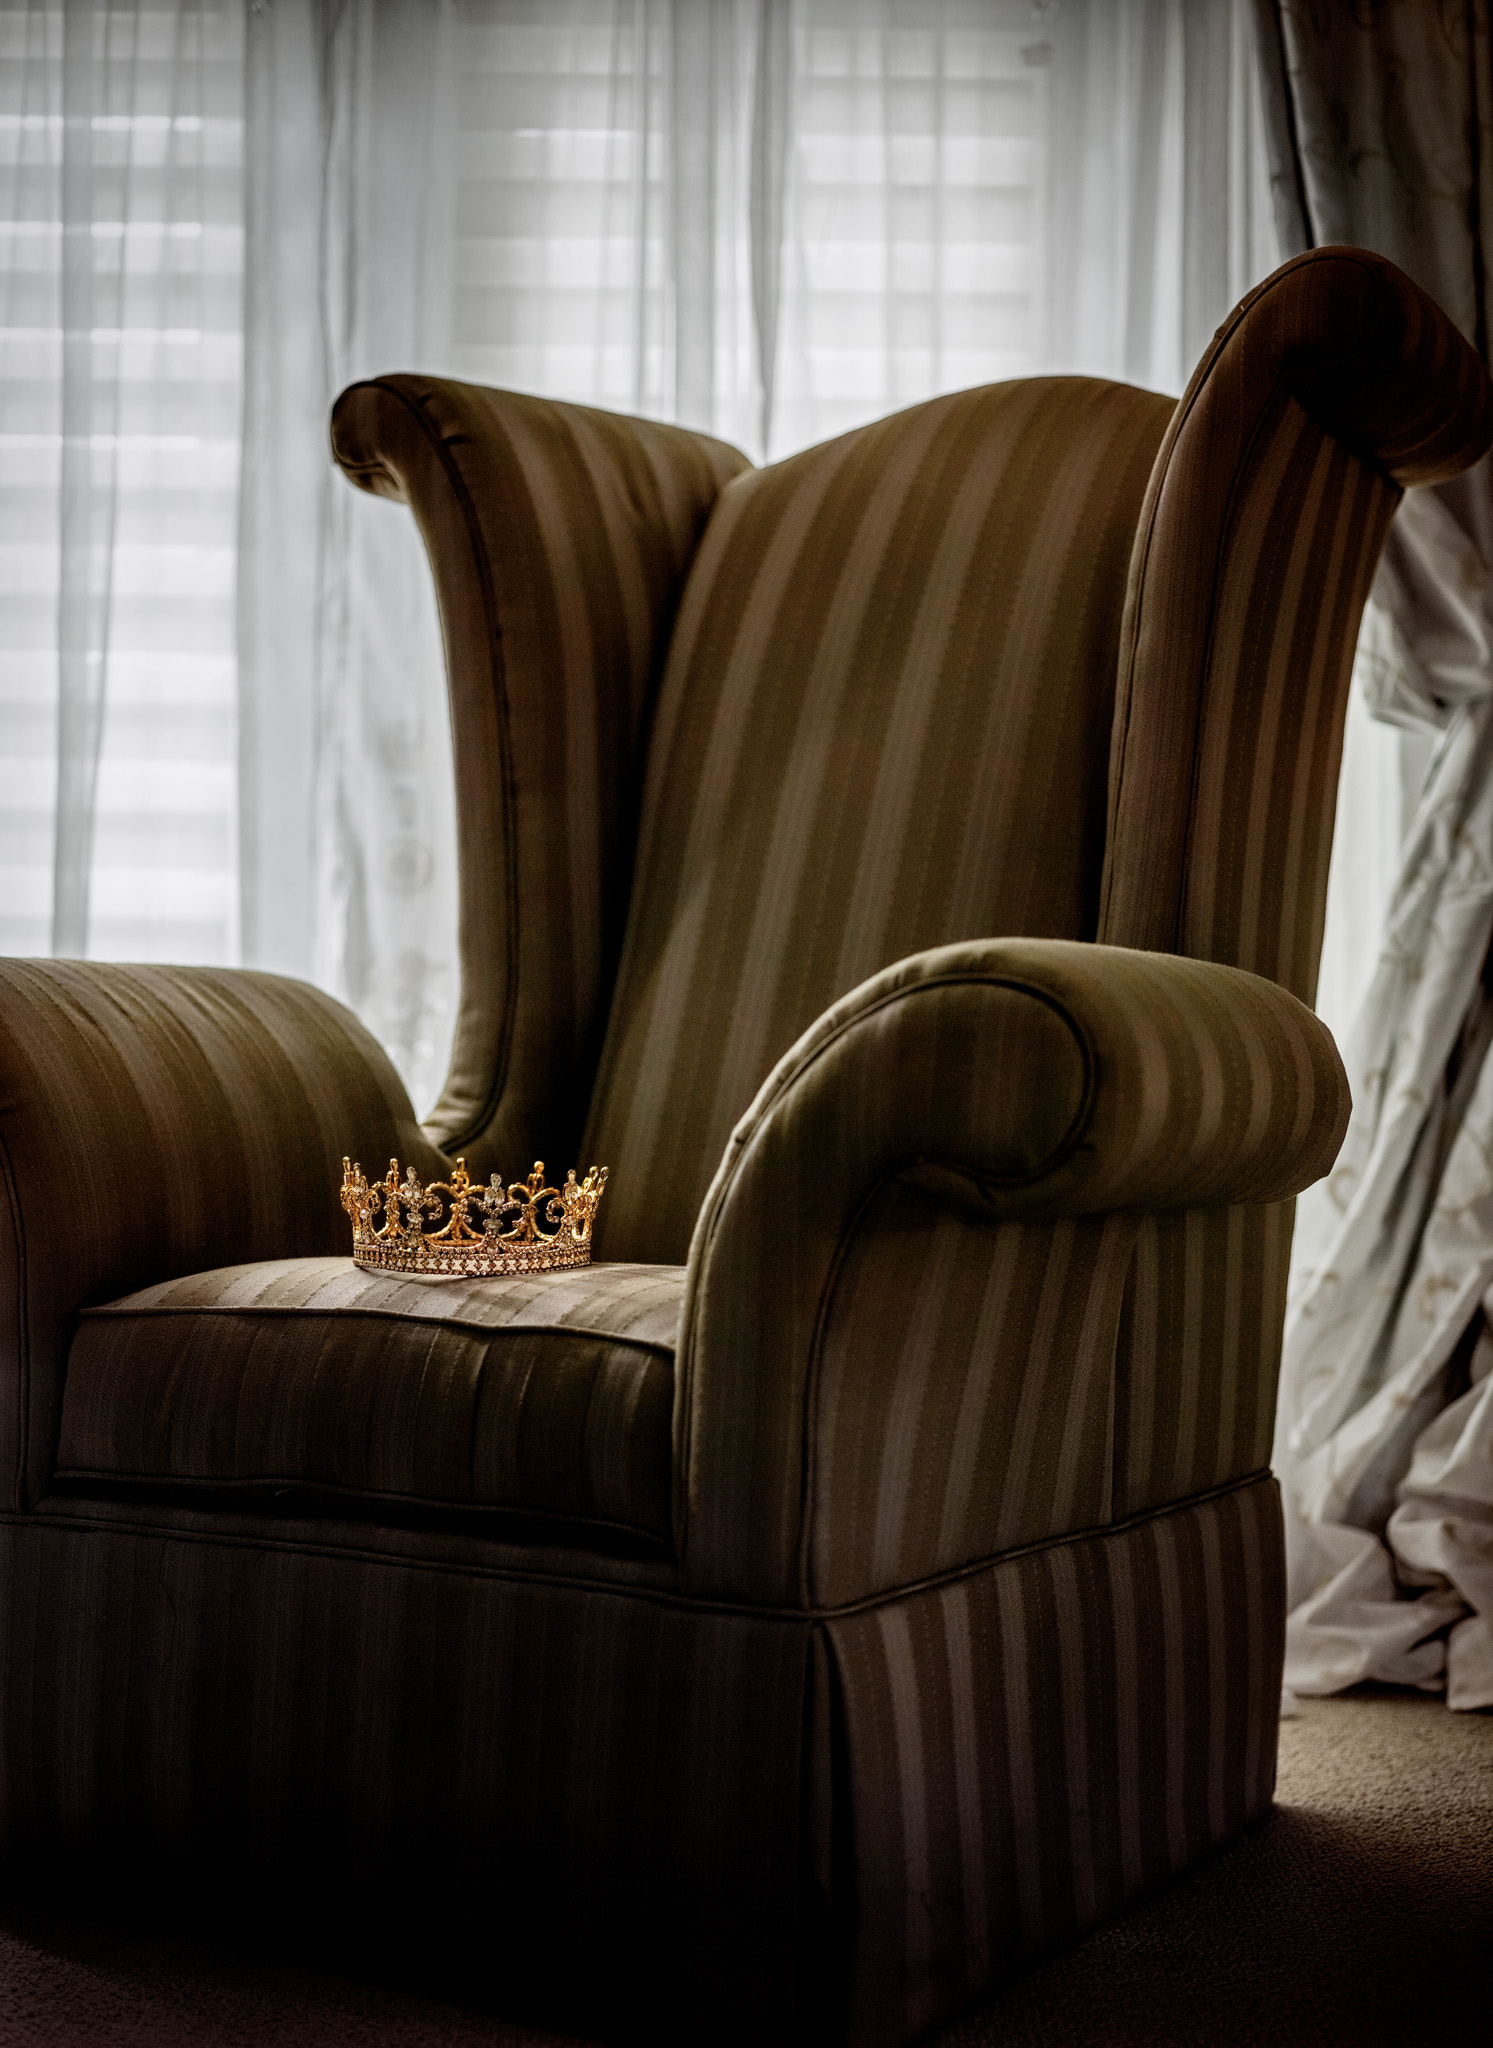 Picture of a crown on an armchair